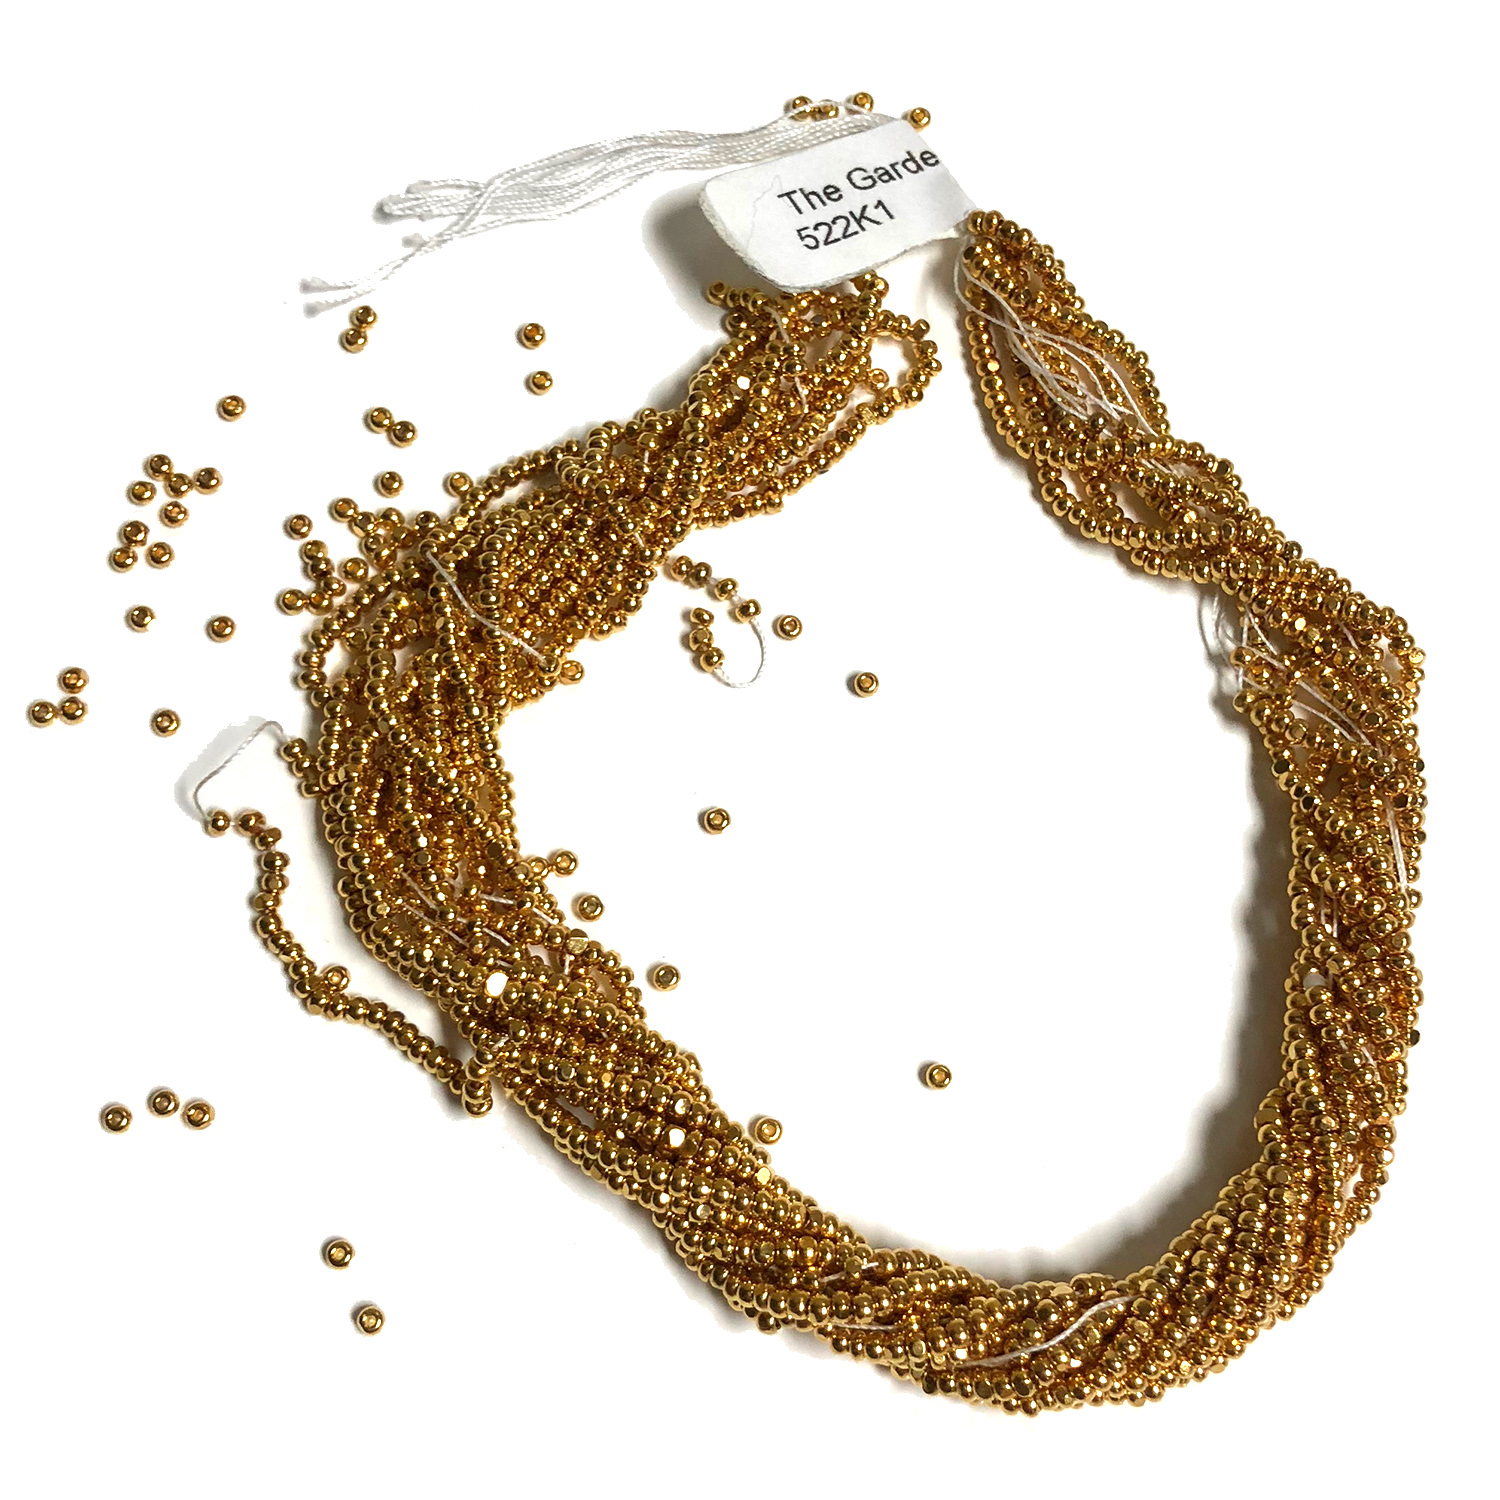 Size 11 Cut Seed, Gold Plated 22K 6 Strands